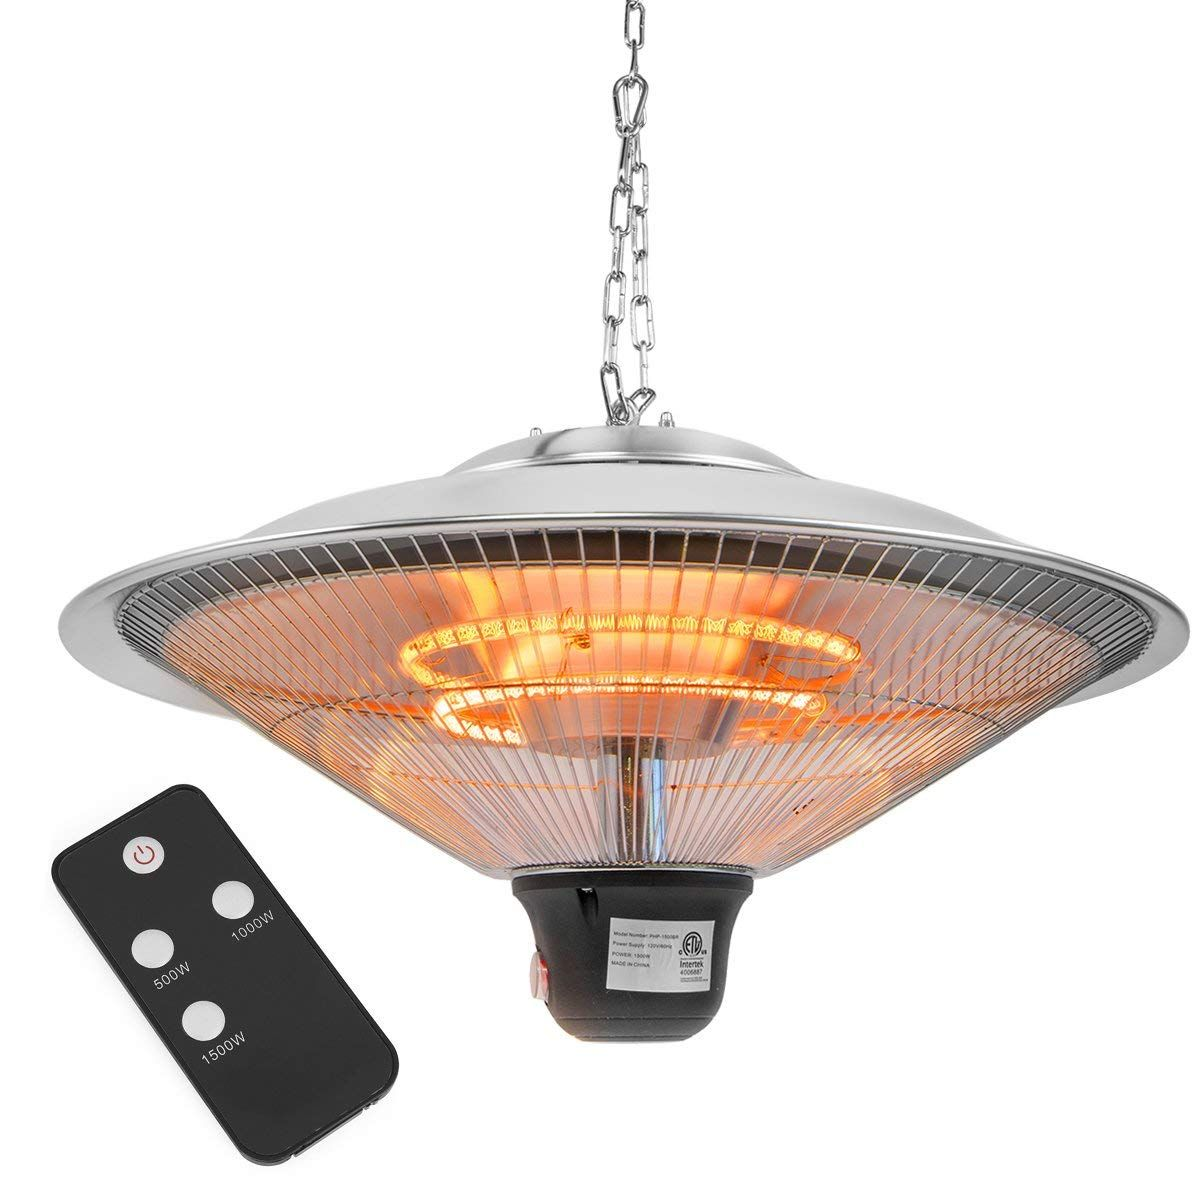 Xtremepowerus 20 Ceiling Electric Hanging Heater 1500 Watt W Remote Controller Hanging Garden Ceiling Patio Heater